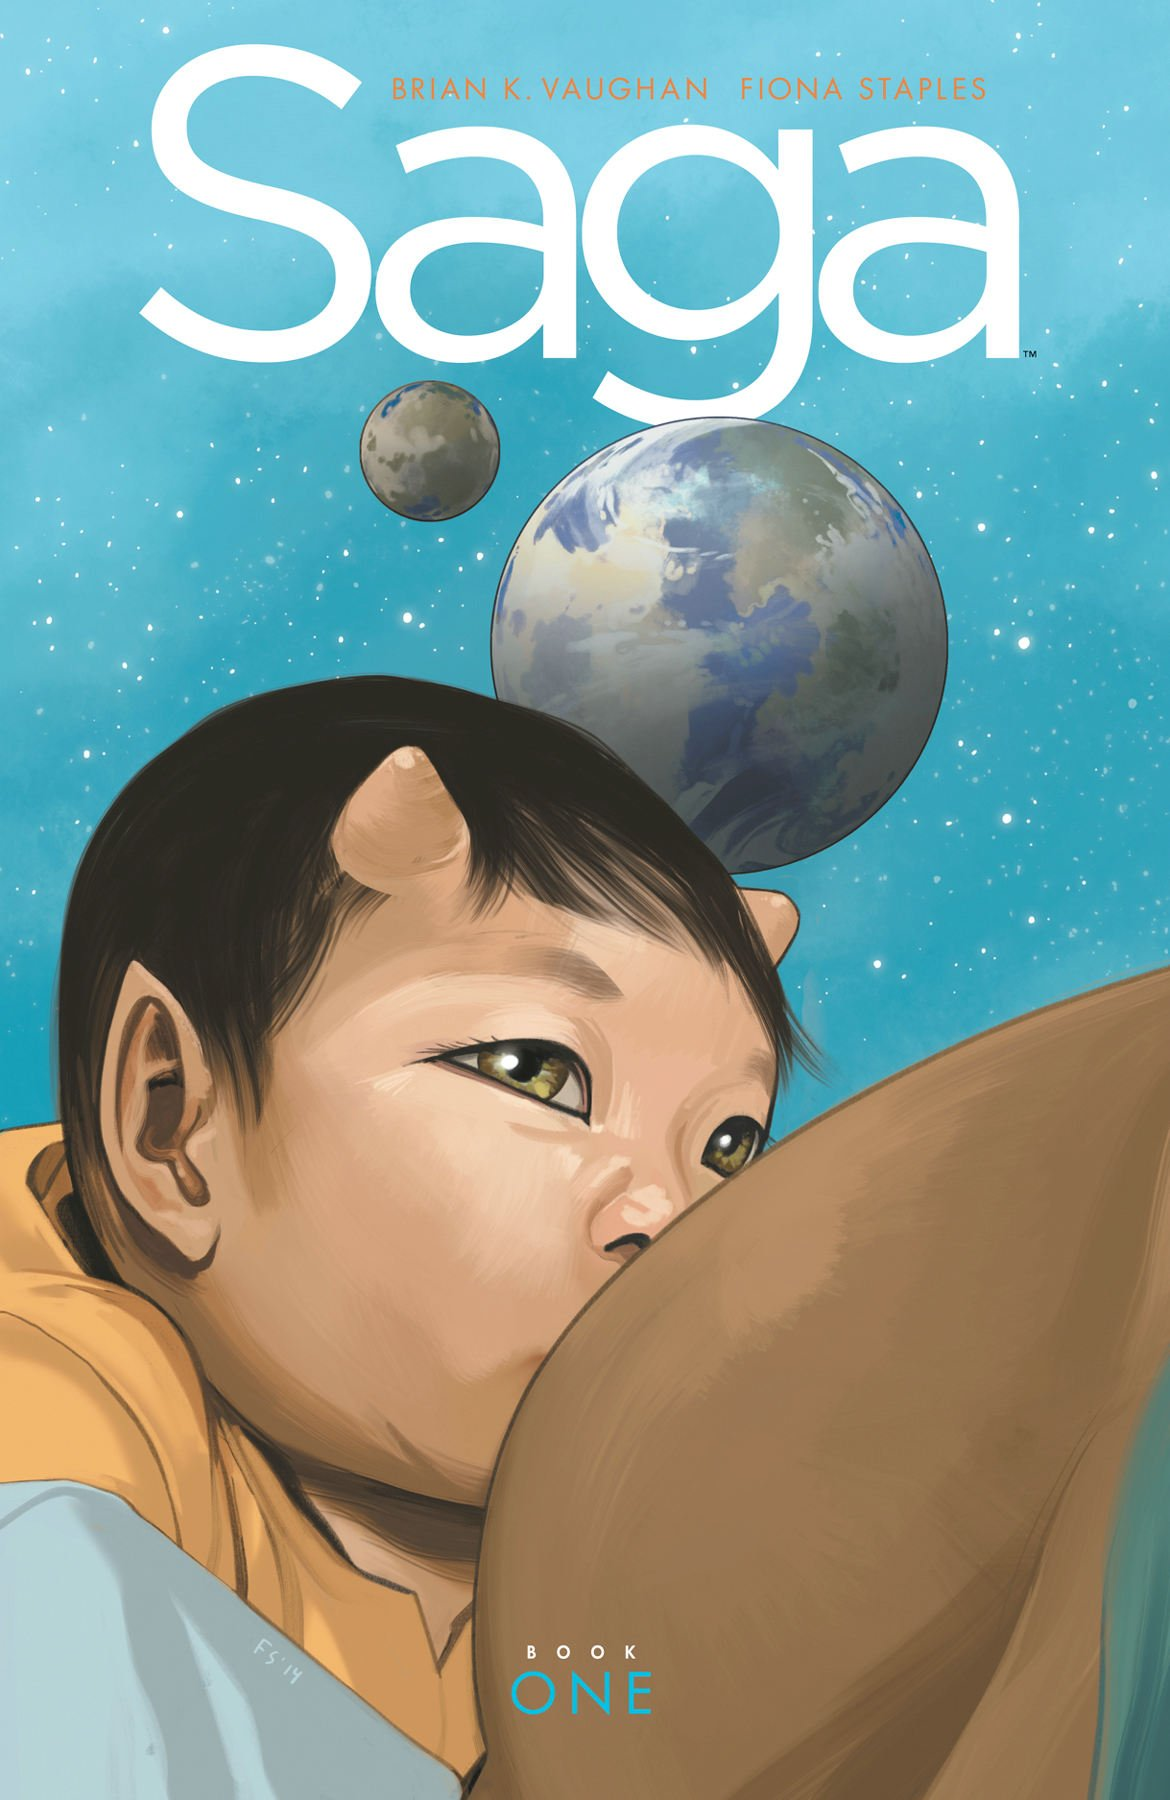 18) Saga (Series) - Read Saga. Read Saga. Please read Saga. Brian K. Vaughan and Fiona Staples' on-going series is probably the best thing to happen to graphic novels since Neil Gaiman's Sandman (appearing later in this list), and is unrivaled when it comes to character development, plot pacing, and emotional maturity. It's funny, dark, heartbreaking, uplifting, beautiful, grotesque, and razor sharp. It's just so good. The art and coloring are also gorgeous and imaginative, and in combination with the writing make Saga the pinnacle of the graphic novel medium. Seriously, just check out this awards list.